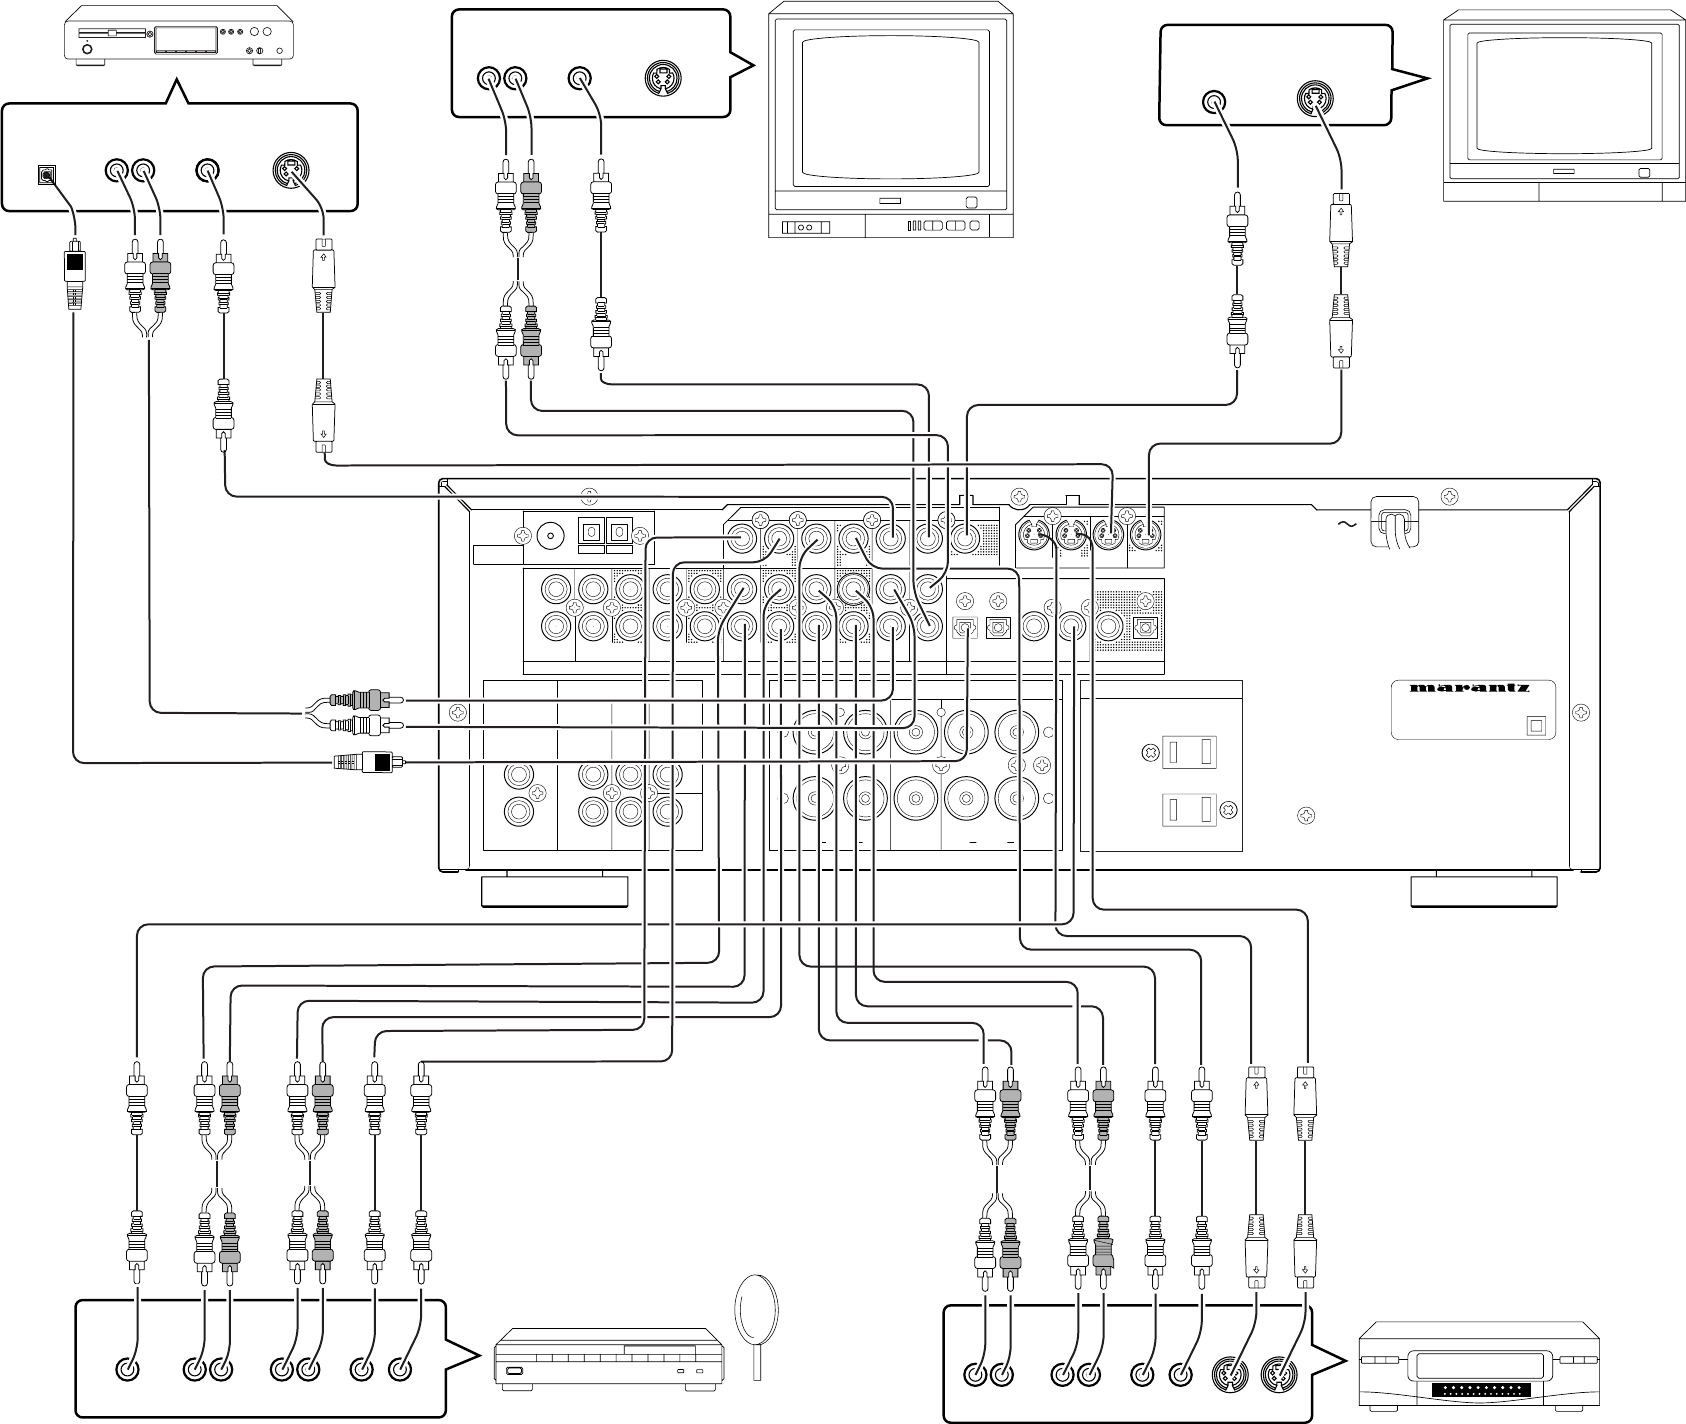 Marantz SR4200 VIDEO SYSTEM CONNECTIONS FOR VIDEO